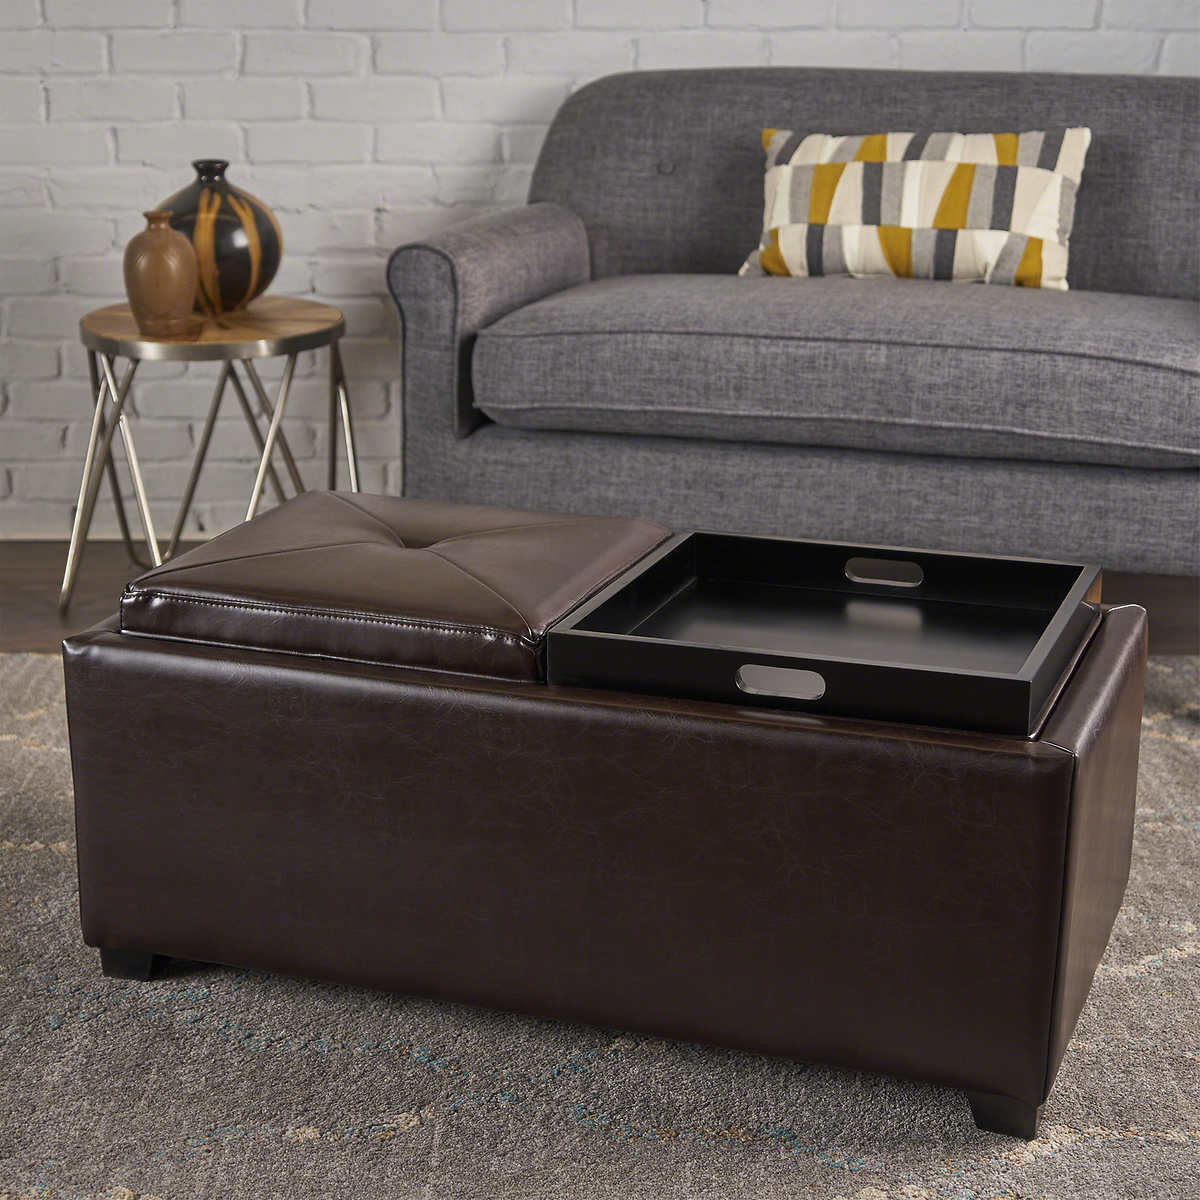 Marcus 2-tray Top Bonded Leather Storage Bench - Ottomans & Benches Costco